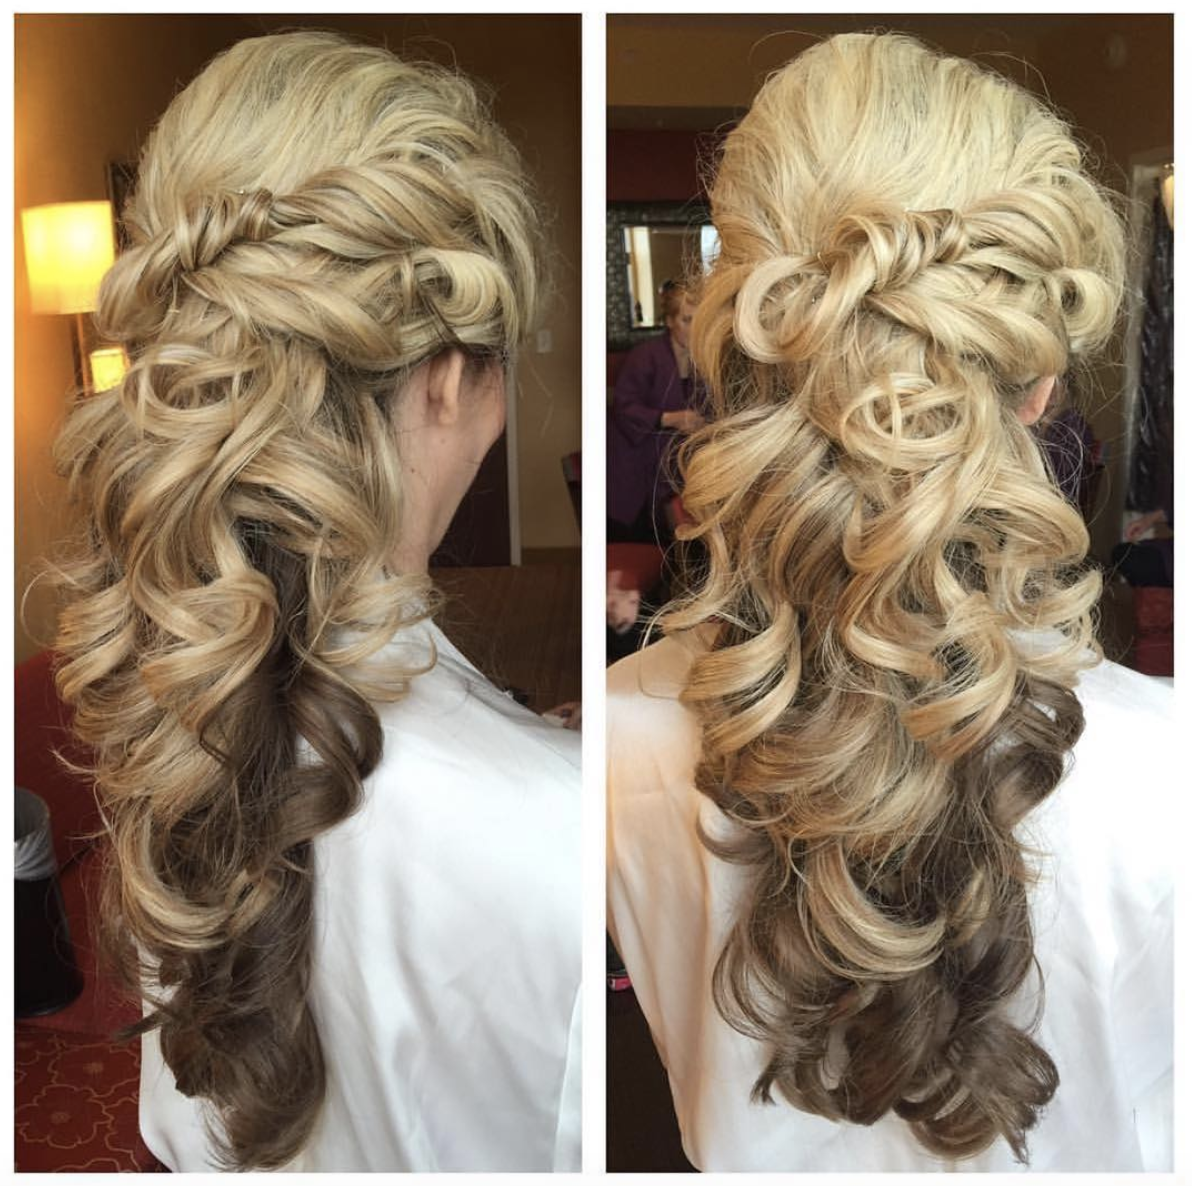 beauty salons in kansas city, mo - the knot